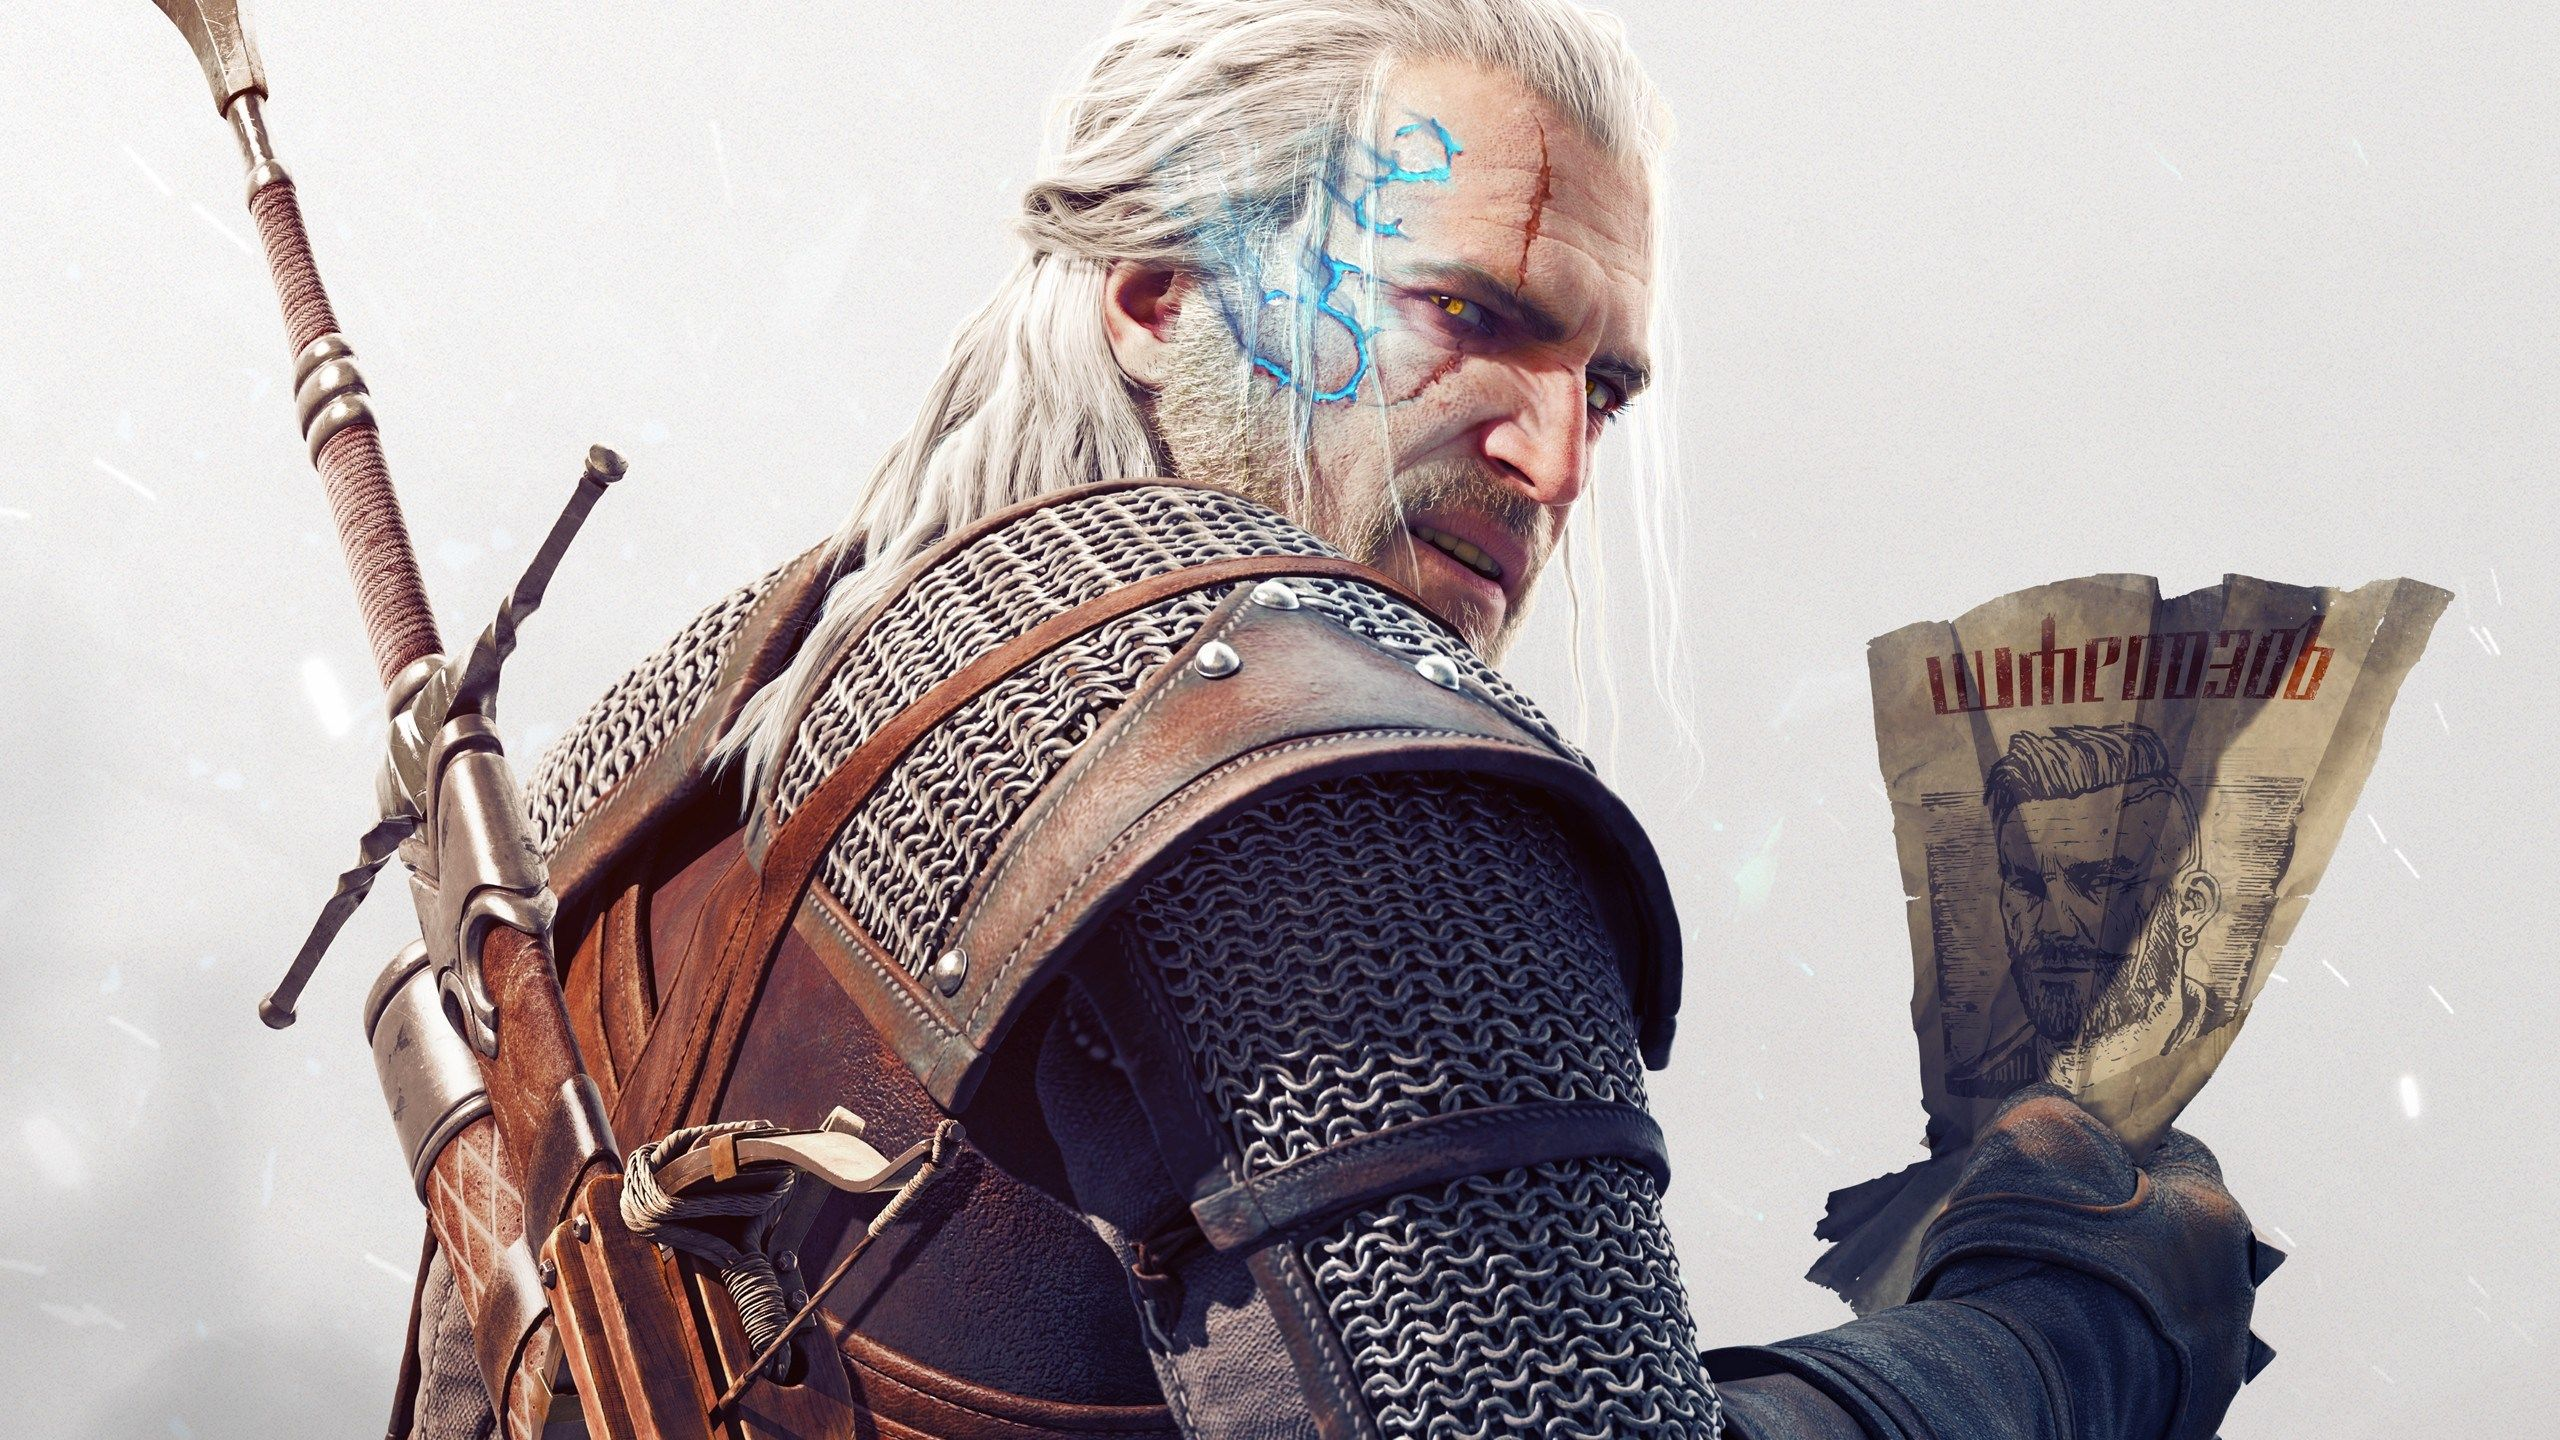 The Witcher 3 Heart Of Stones Hd Wallpaper The Witcher 3 The Witcher Wild Hunt